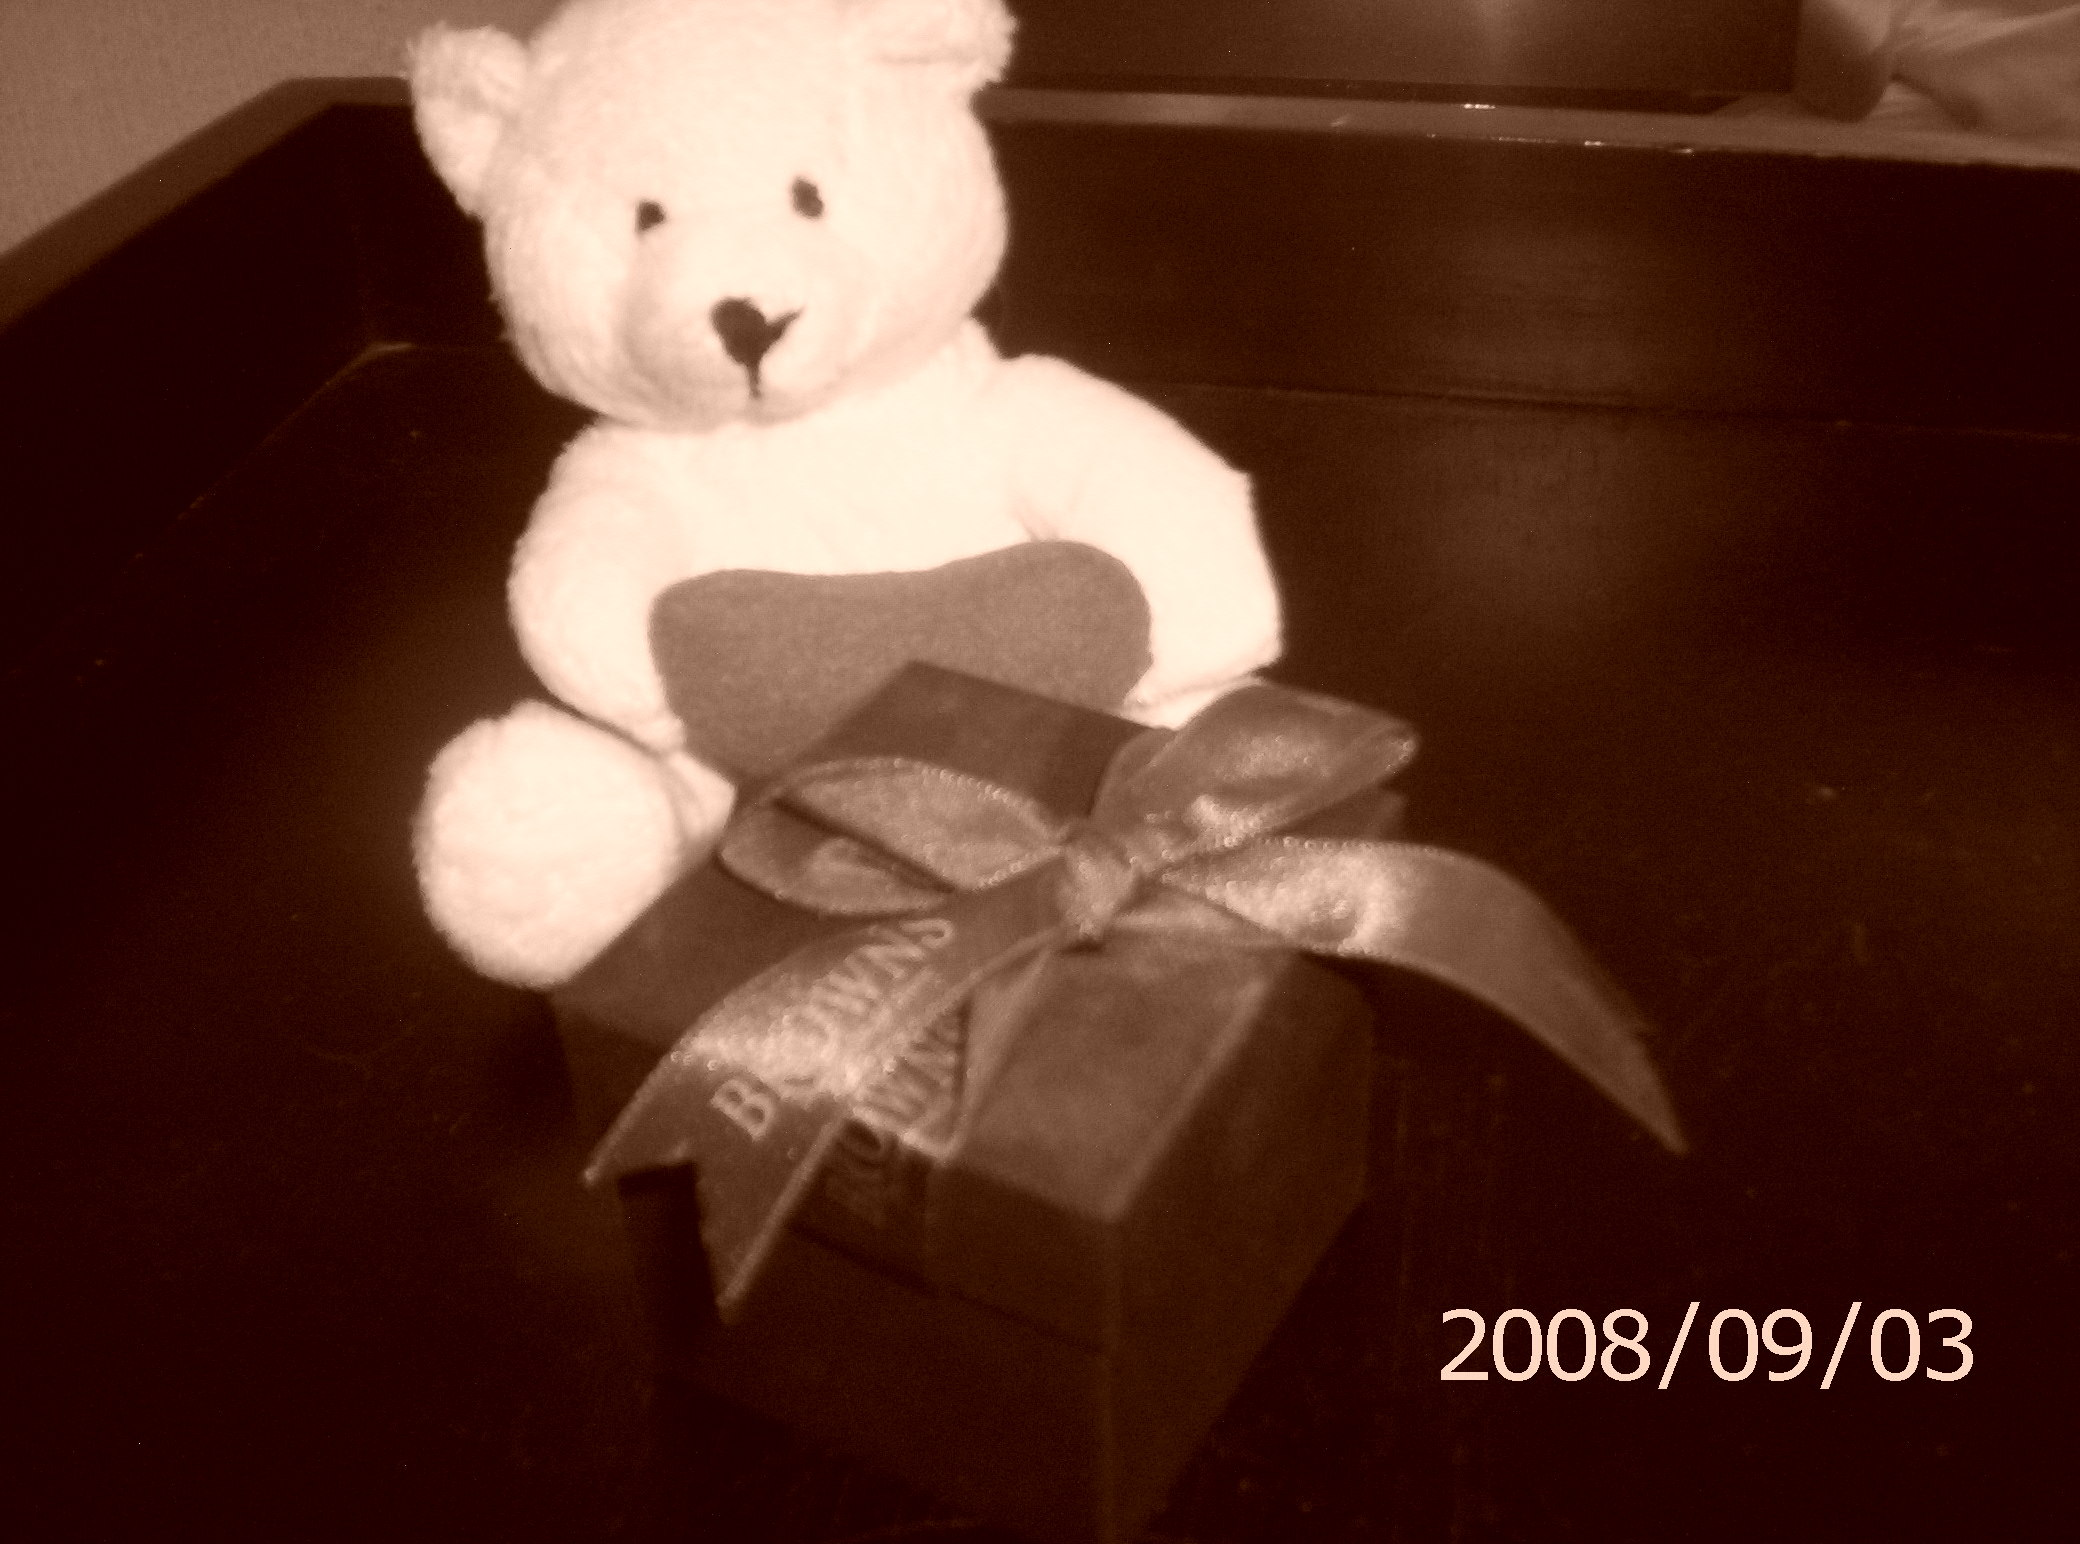 Ring, Box, Teddy